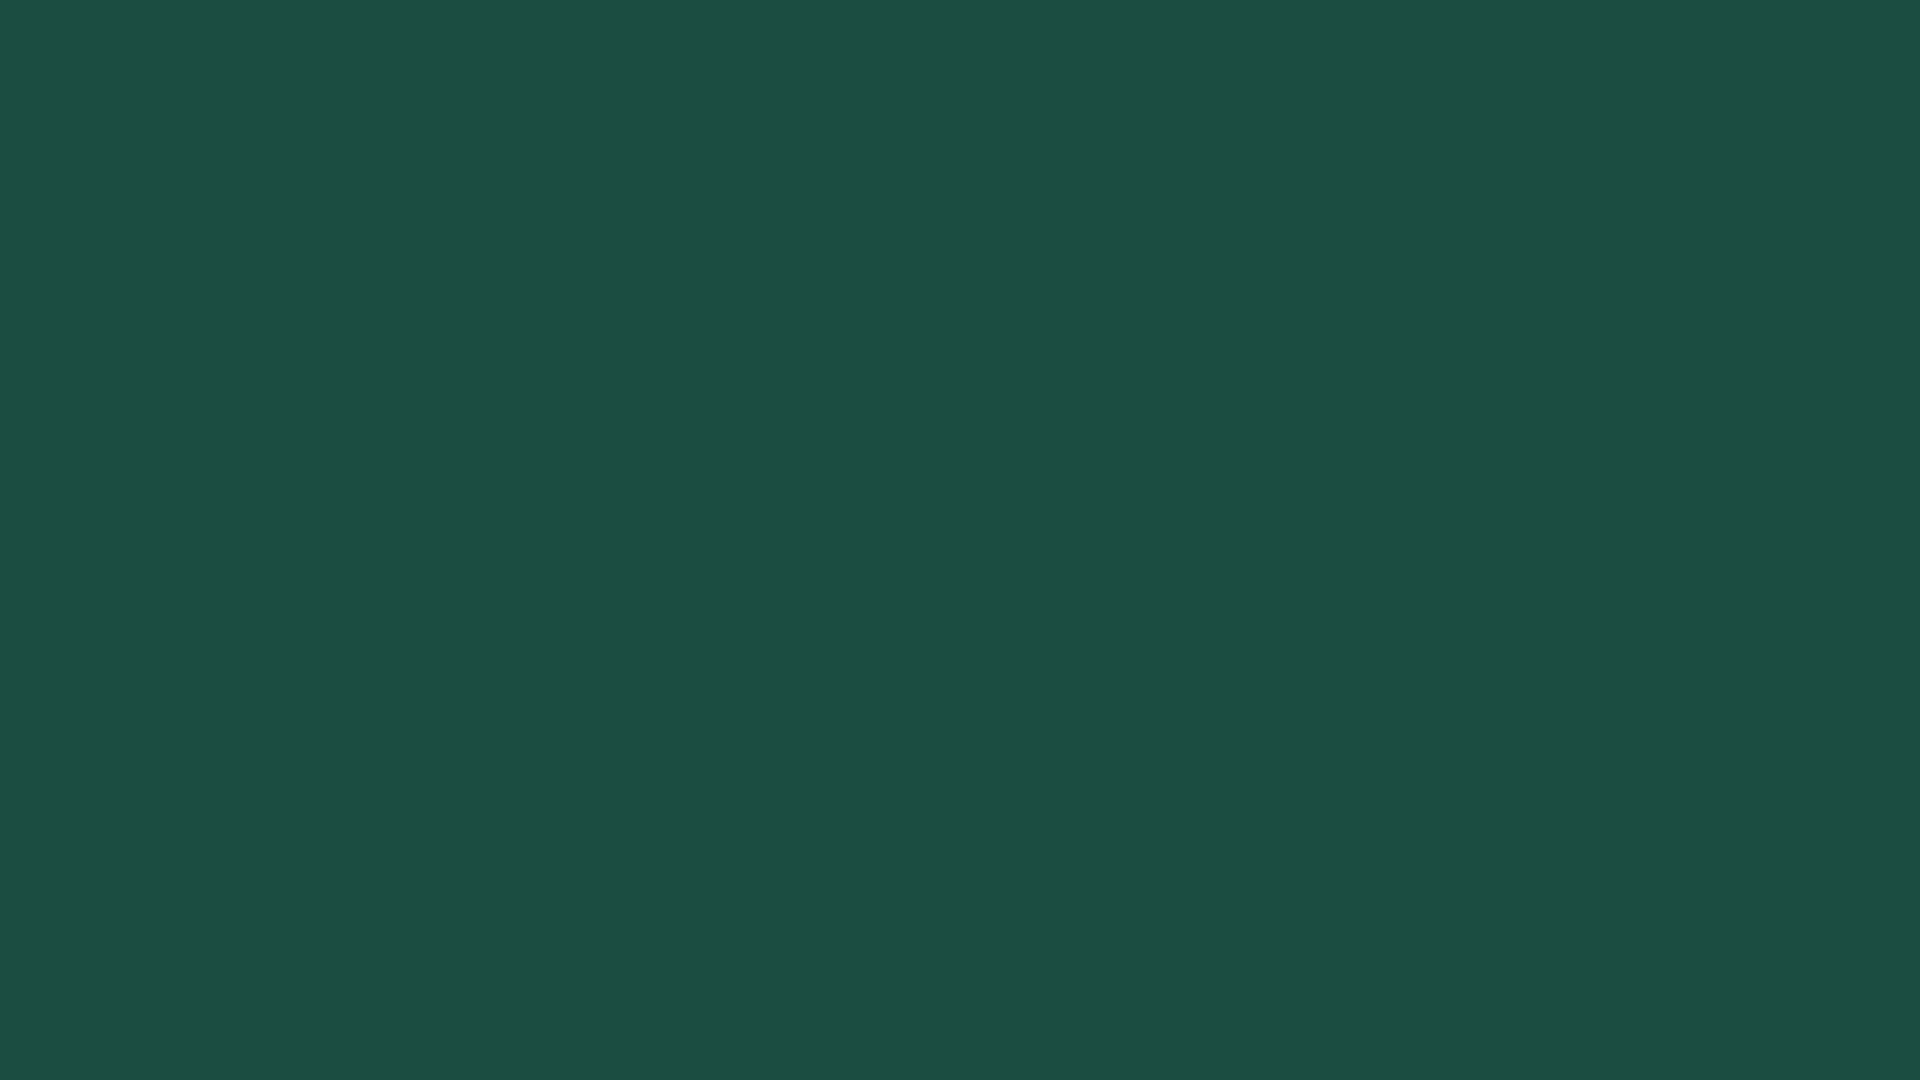 1920x1080 English Green Solid Color Background